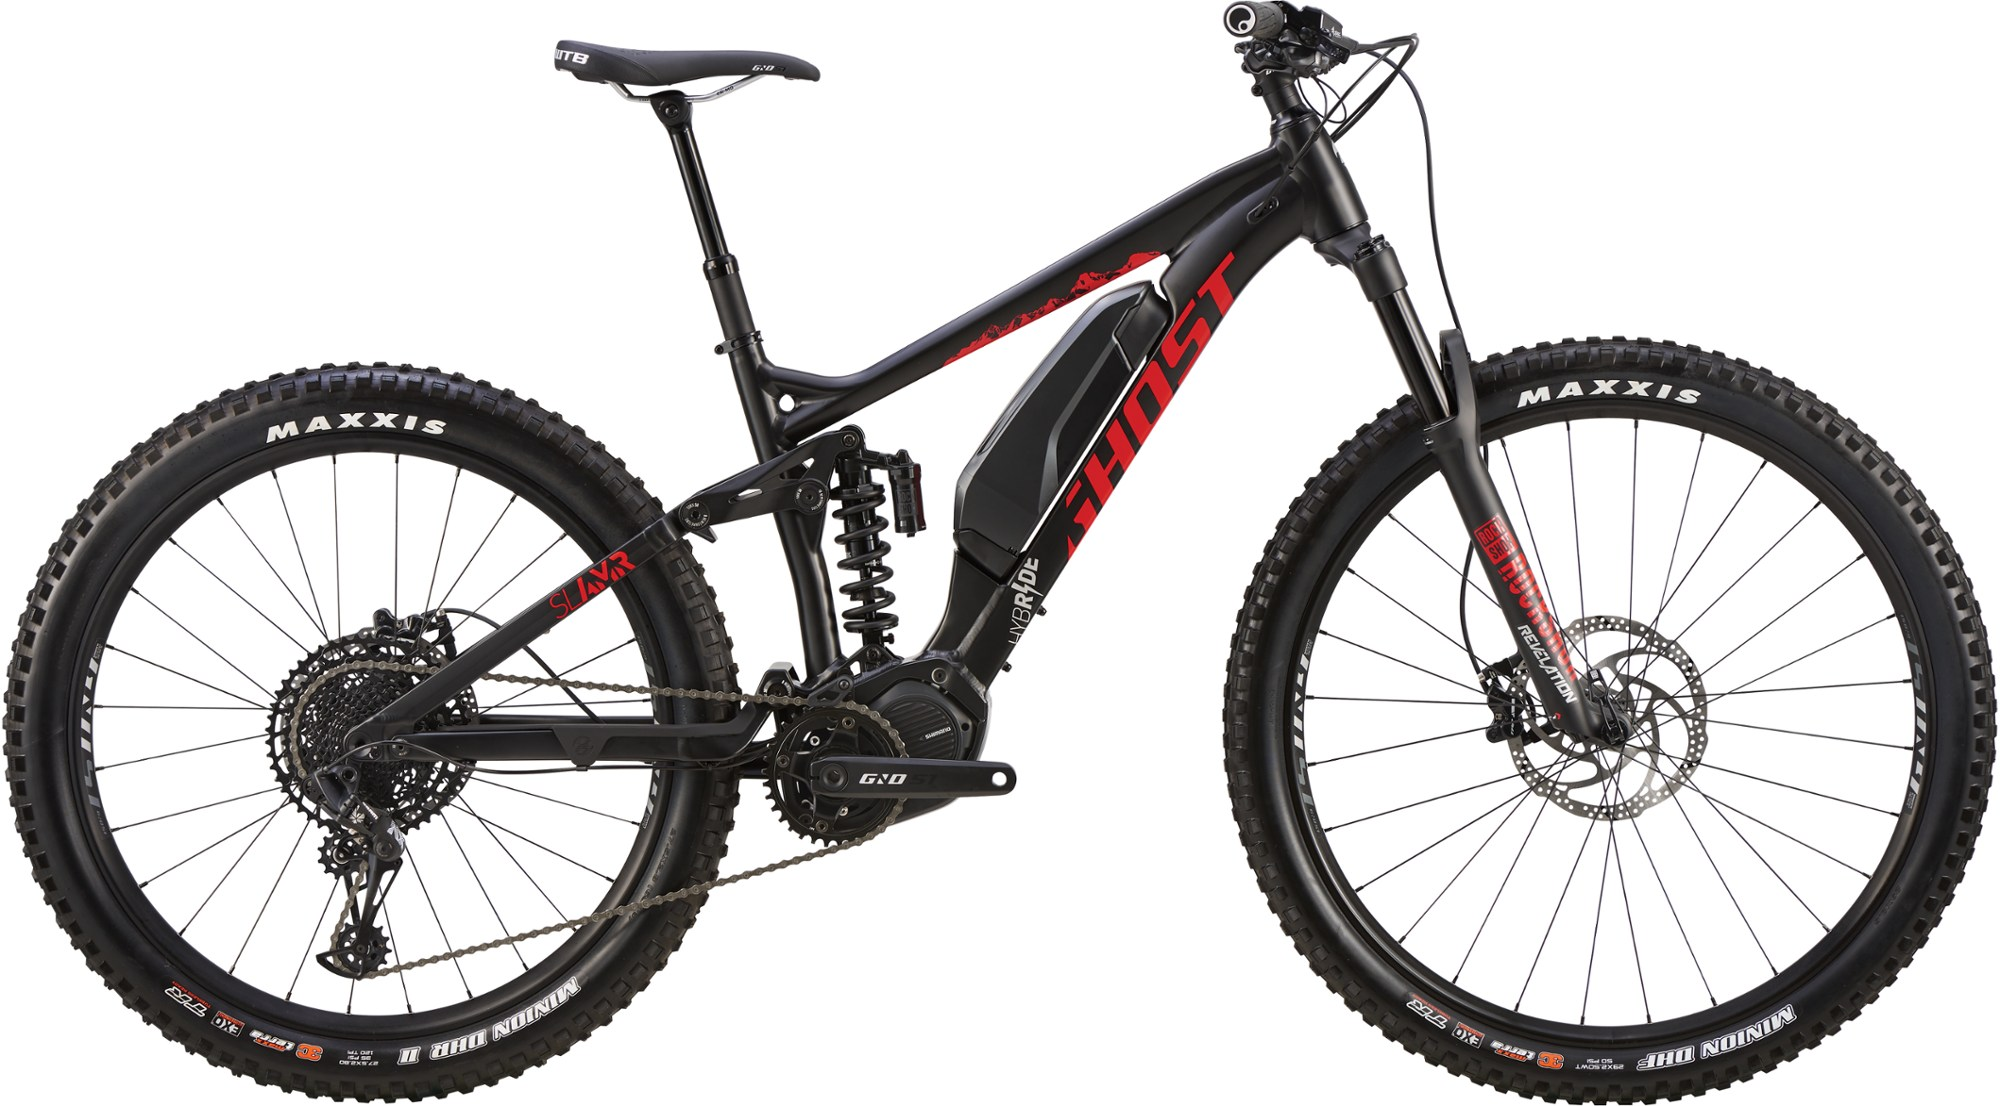 GHOST Hybride SLAMR S2.7+ Electric Mountain Bike - 2019